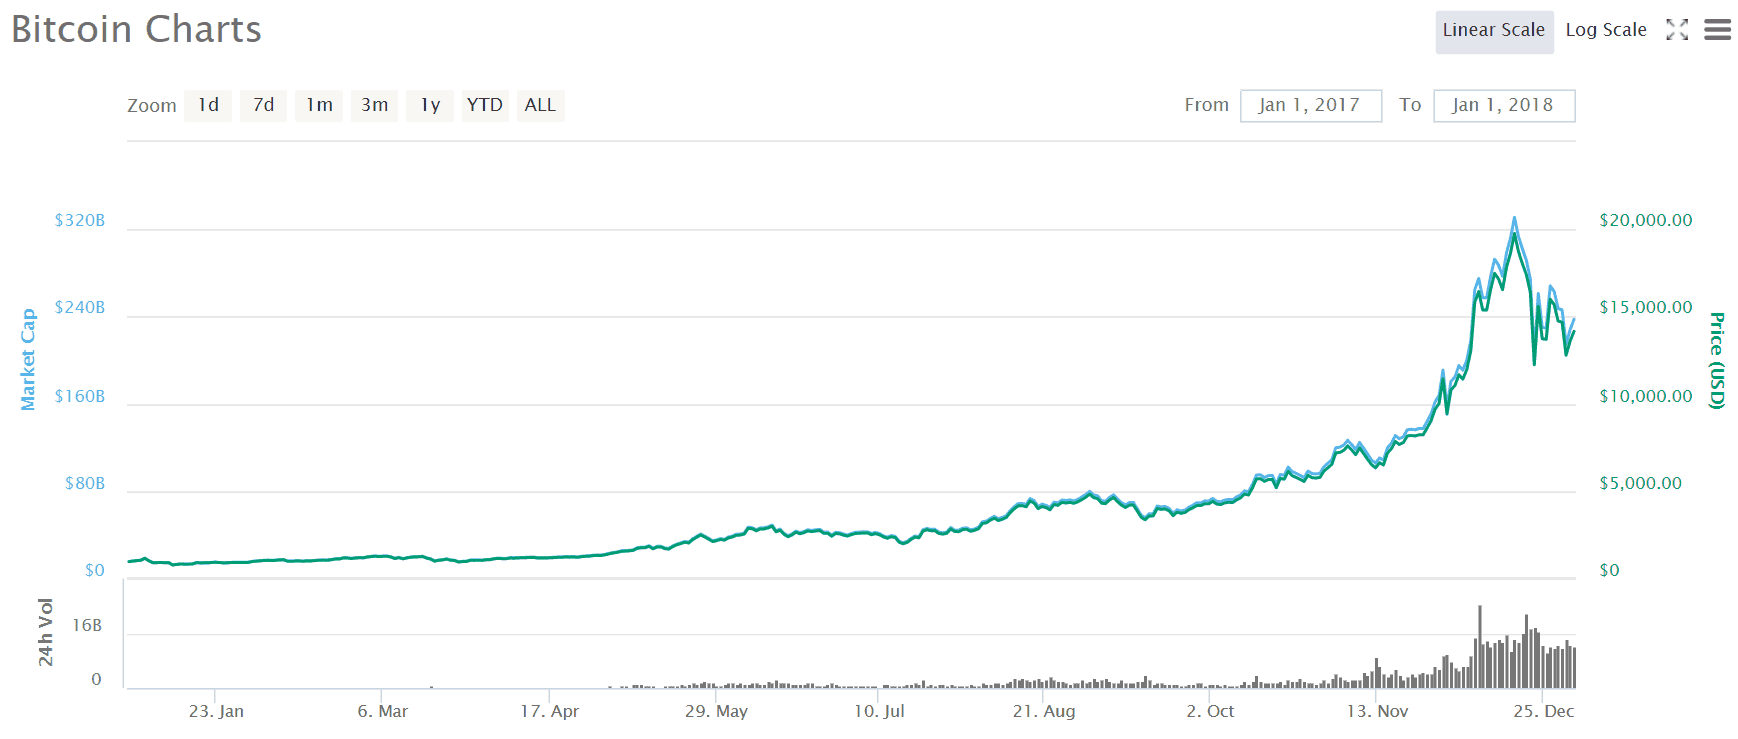 Bitcoin rising from below $1000 on 1 January 2017 to nearly $20,000